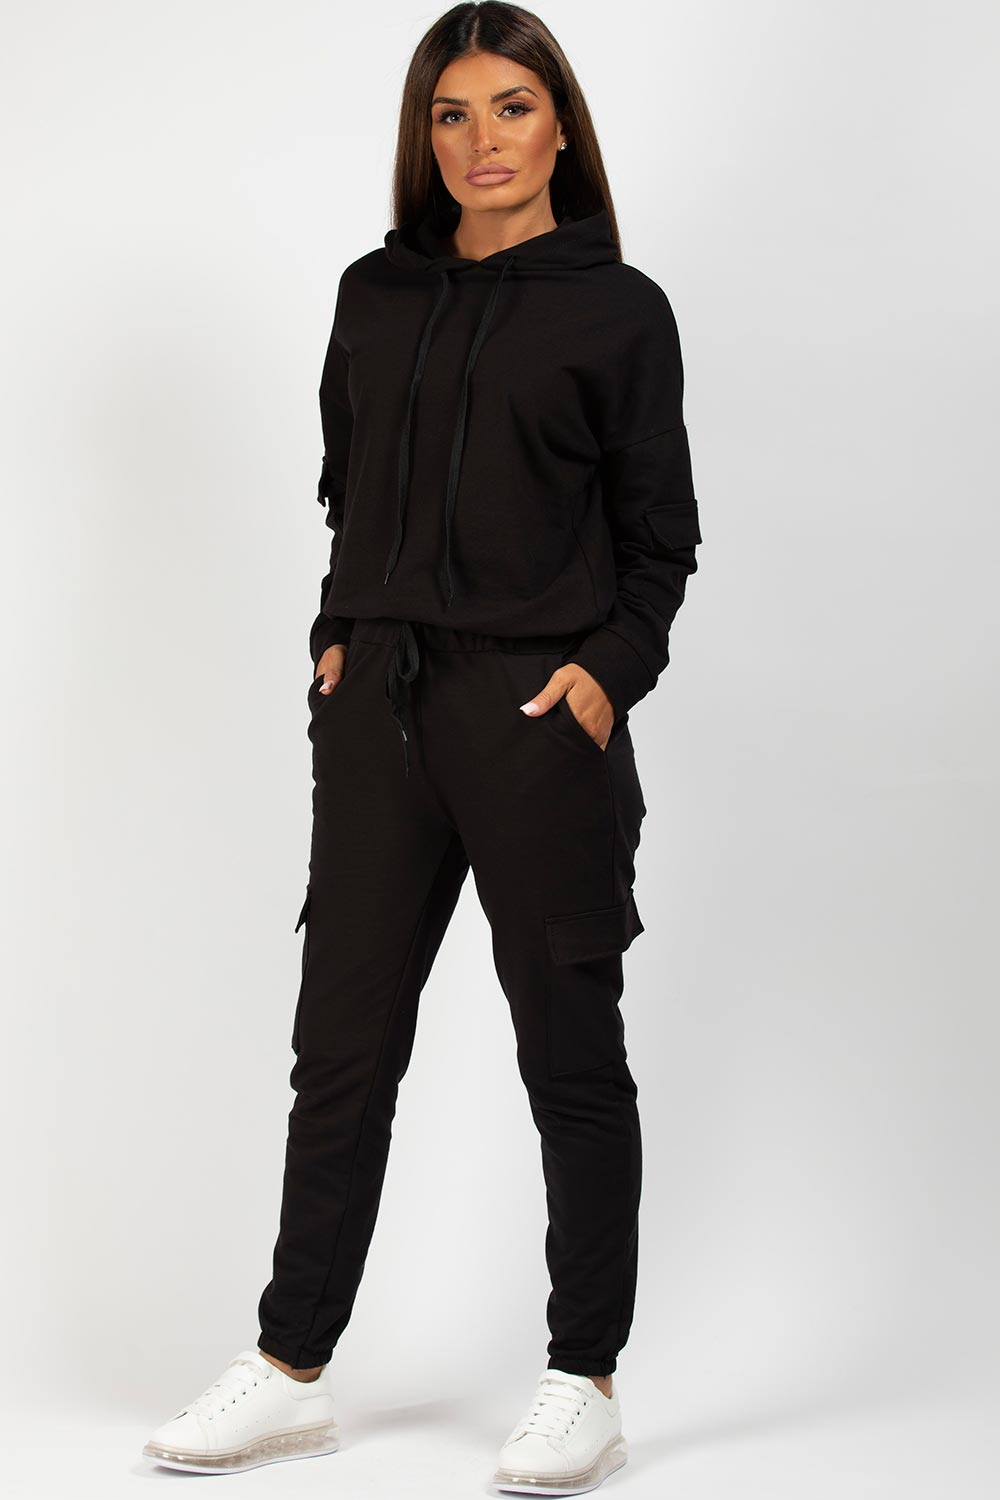 black hooded oversized loungewear set